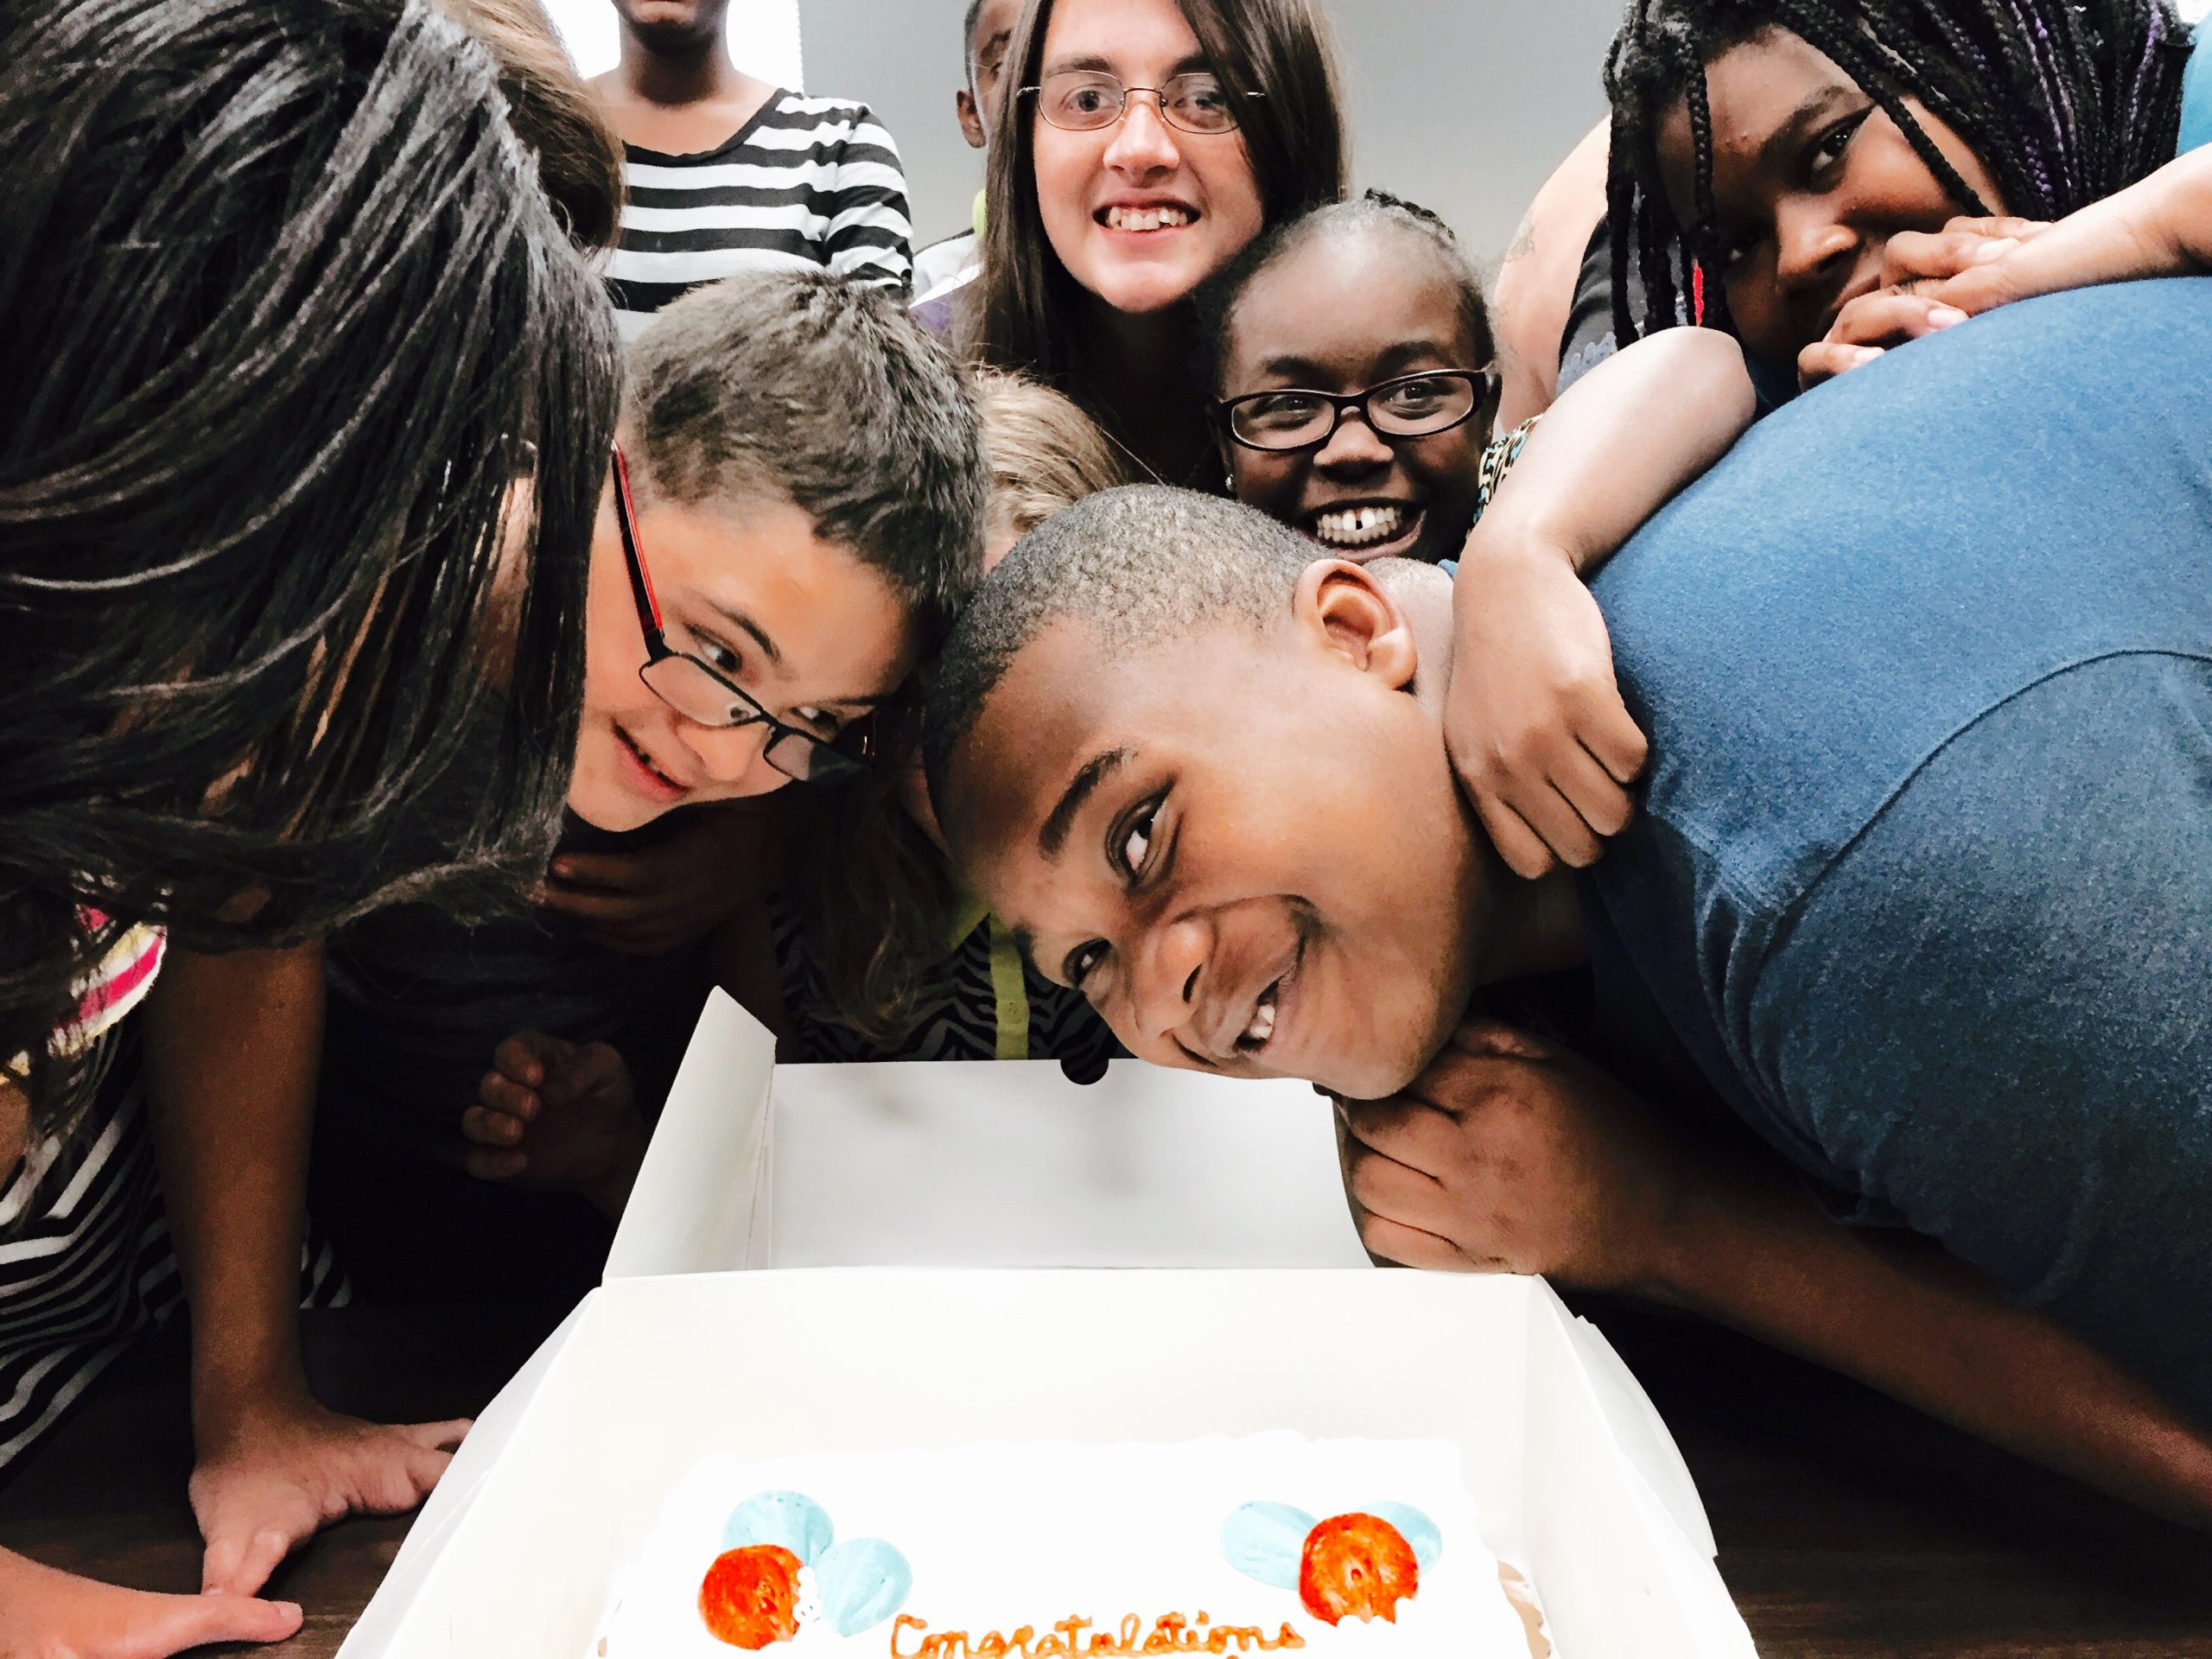 Image of youth surrounding cake